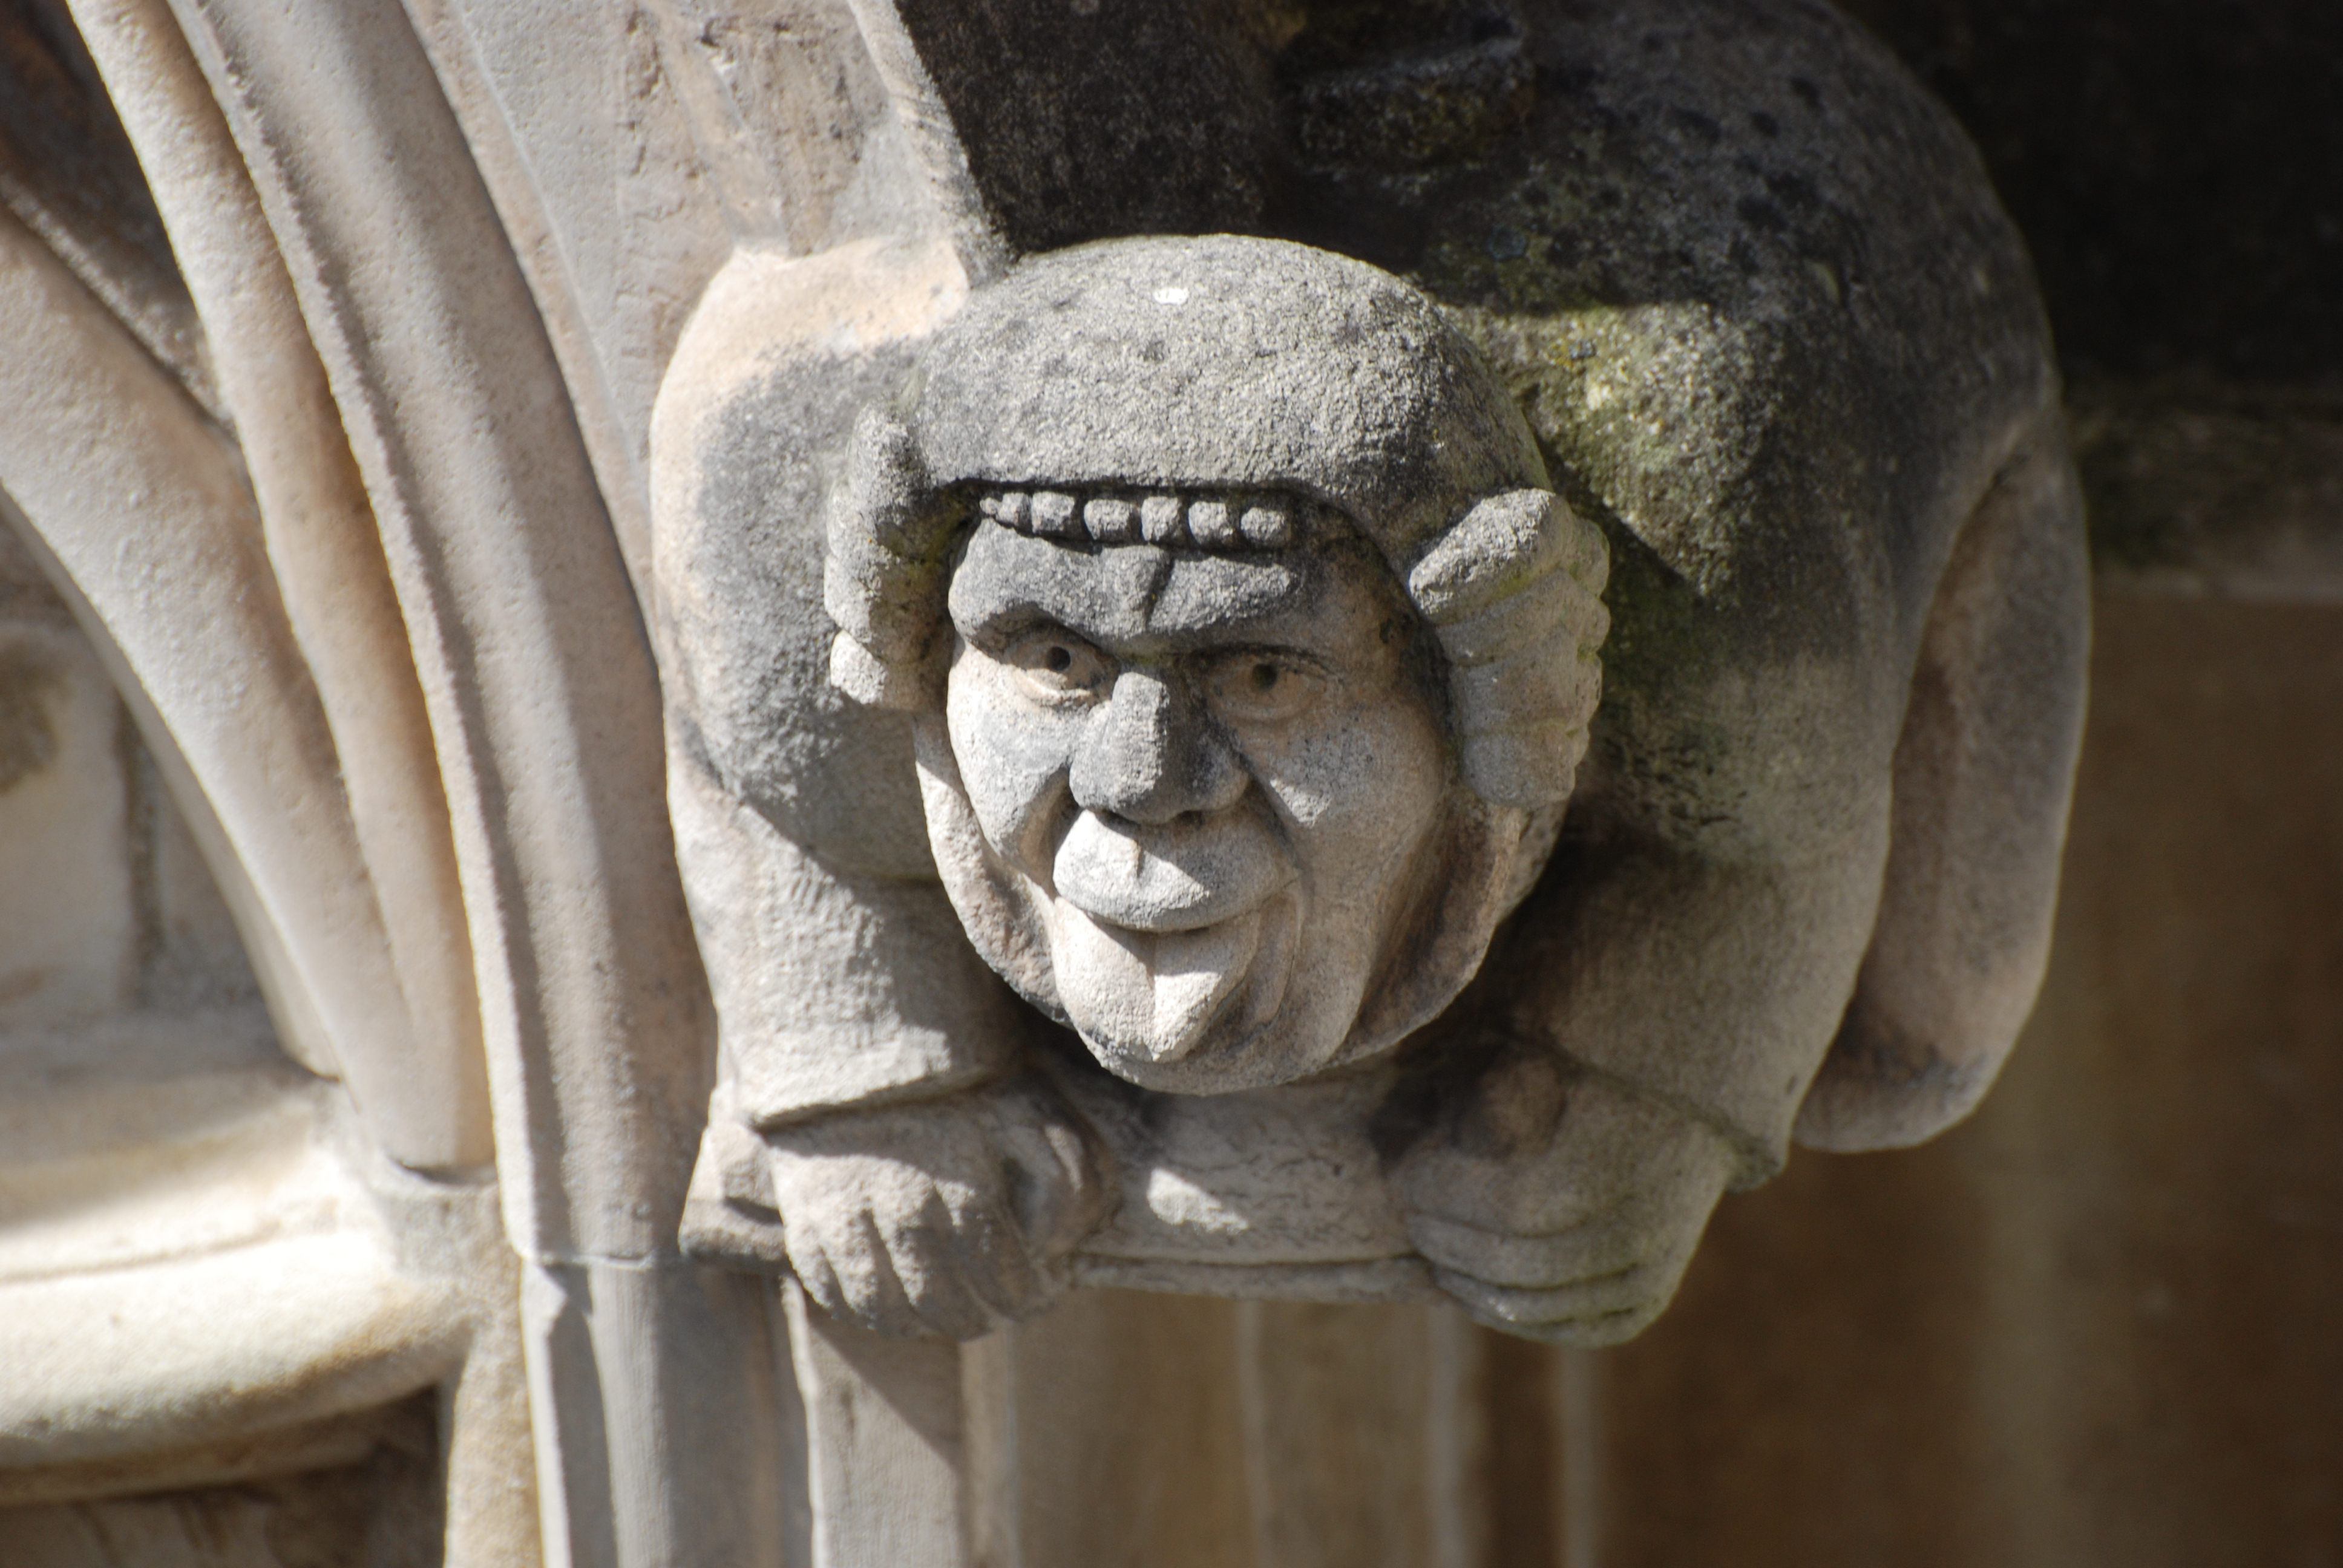 40 gargoyles and grotesques around the world archive the 40 gargoyles and grotesques around the world archive the apricity forum a european cultural community biocorpaavc Images